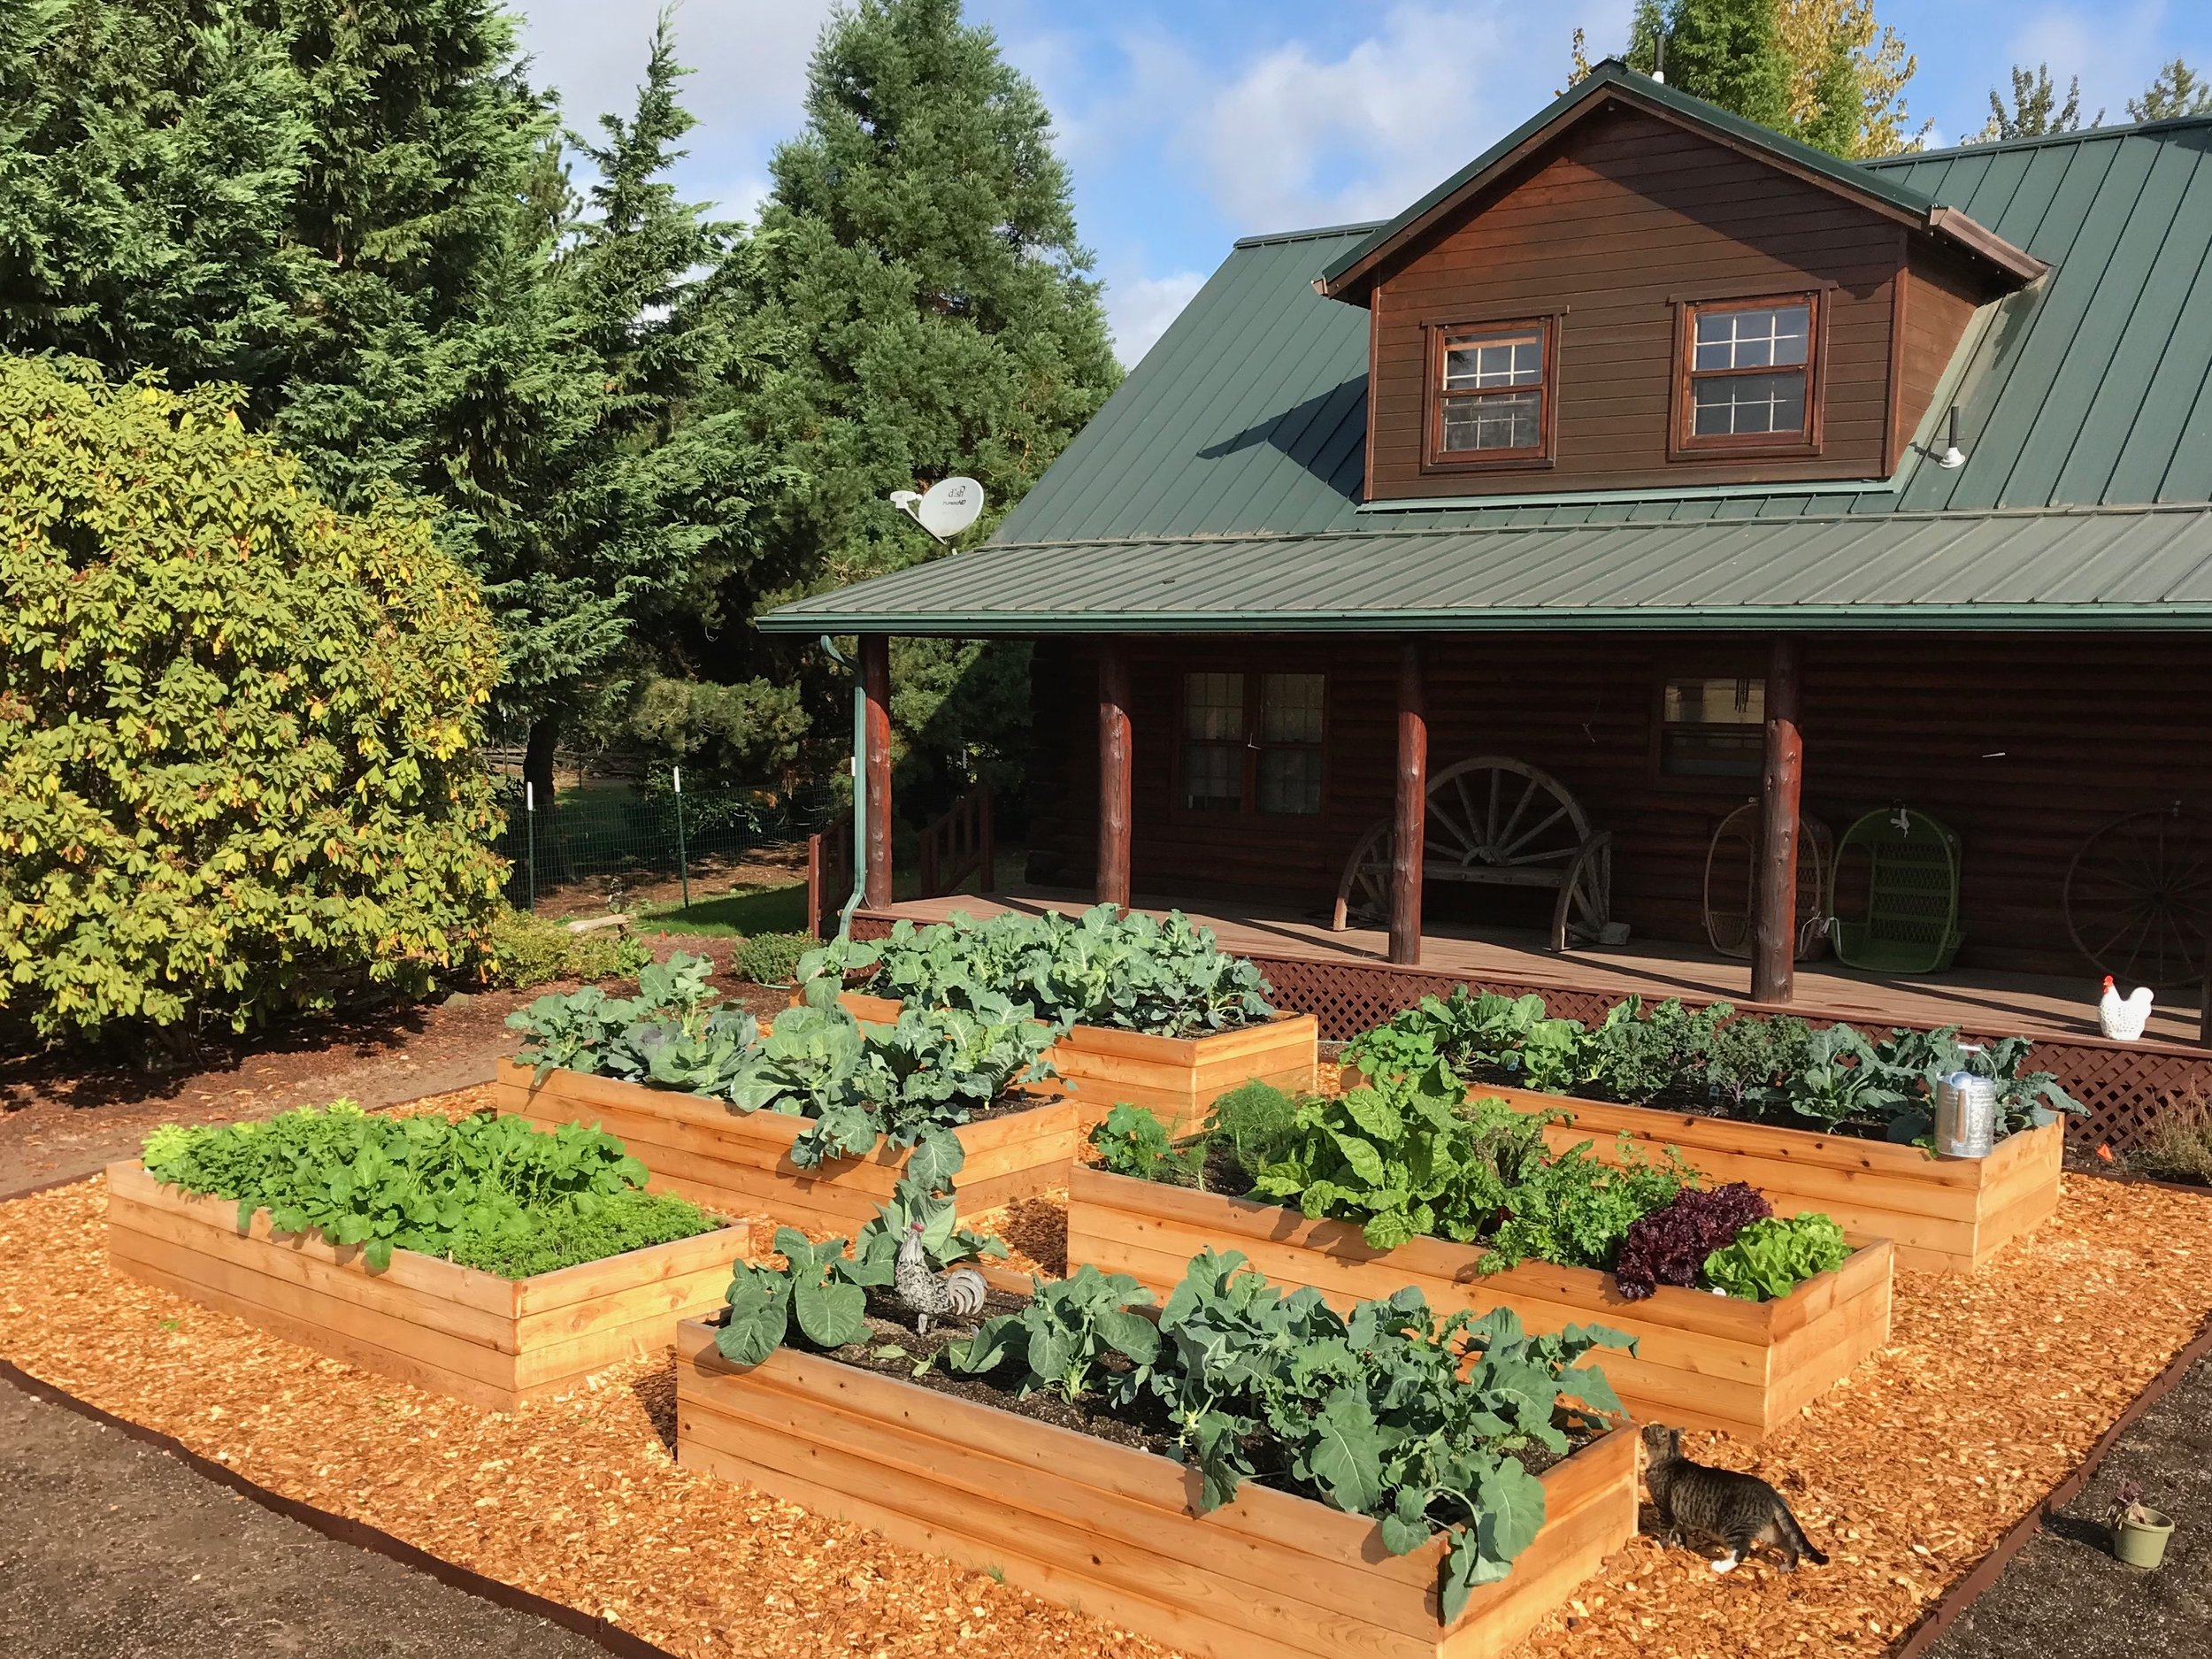 Bountiful Vegetable Garden Beds